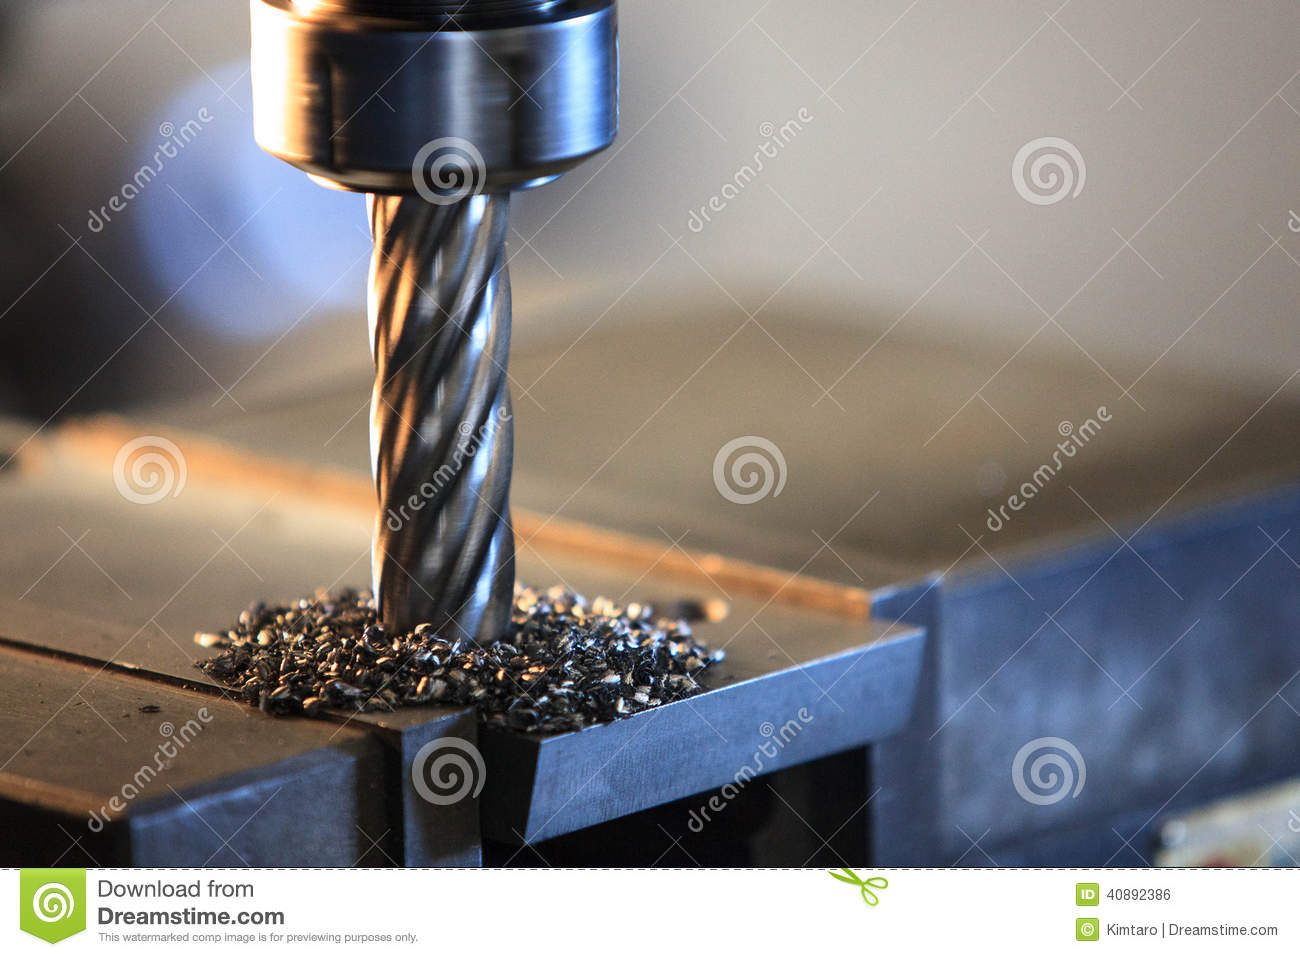 Process Drilling Steel Plate By Milling Machine Stock Photo - Image ...